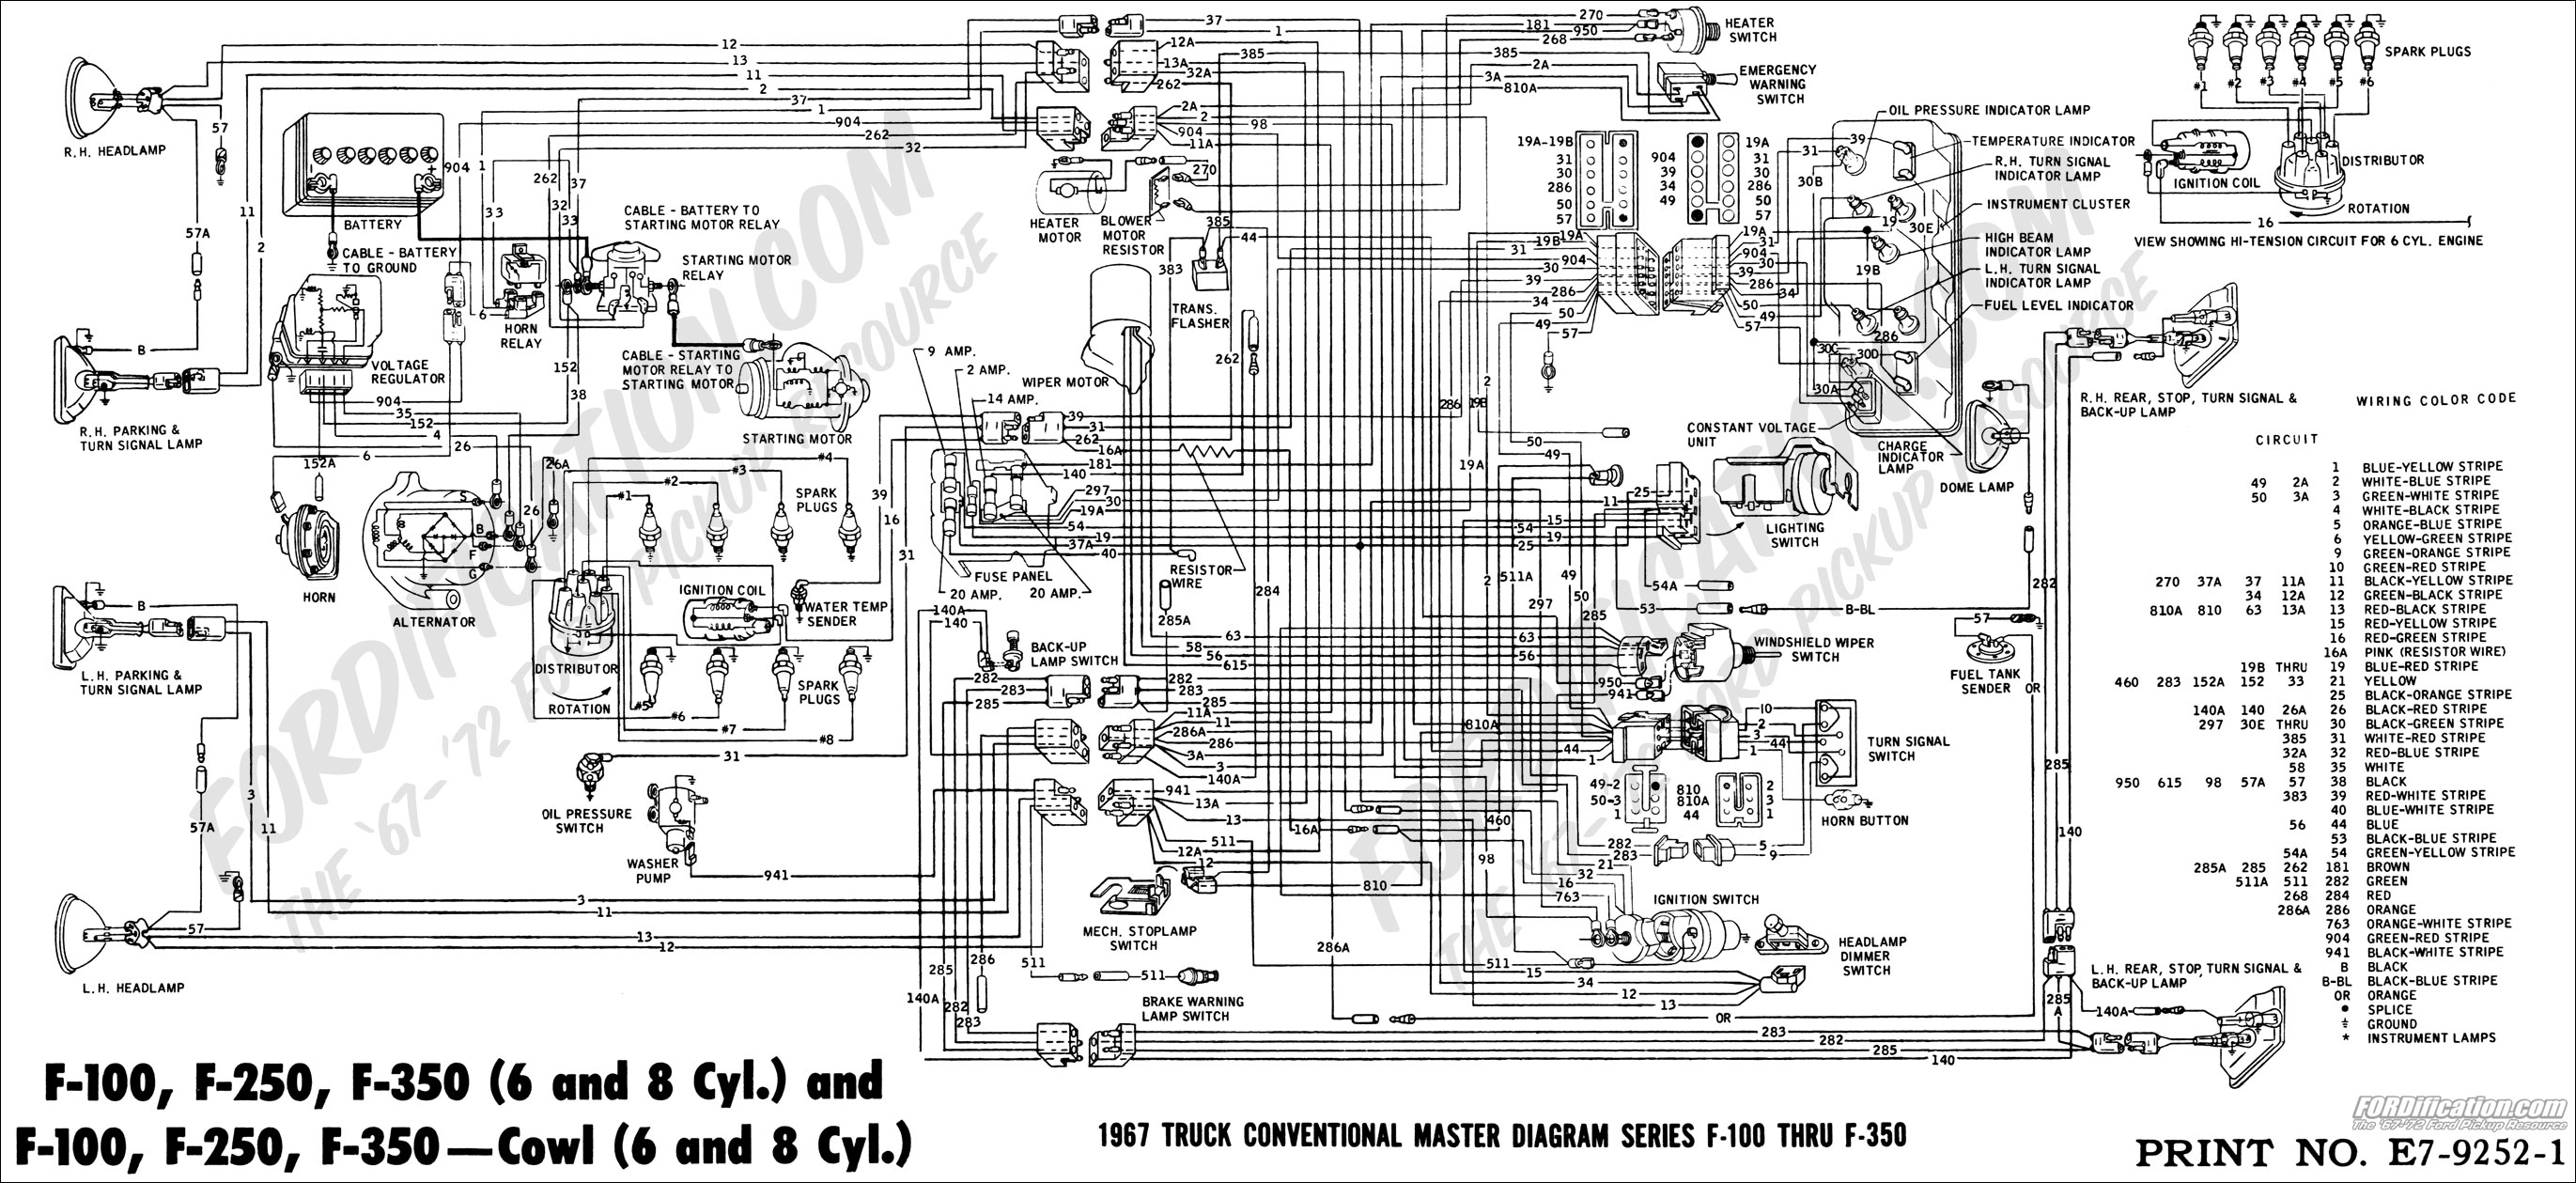 1996 ford bronco radio wiring diagram two pole light switch truck technical drawings and schematics - section h diagrams